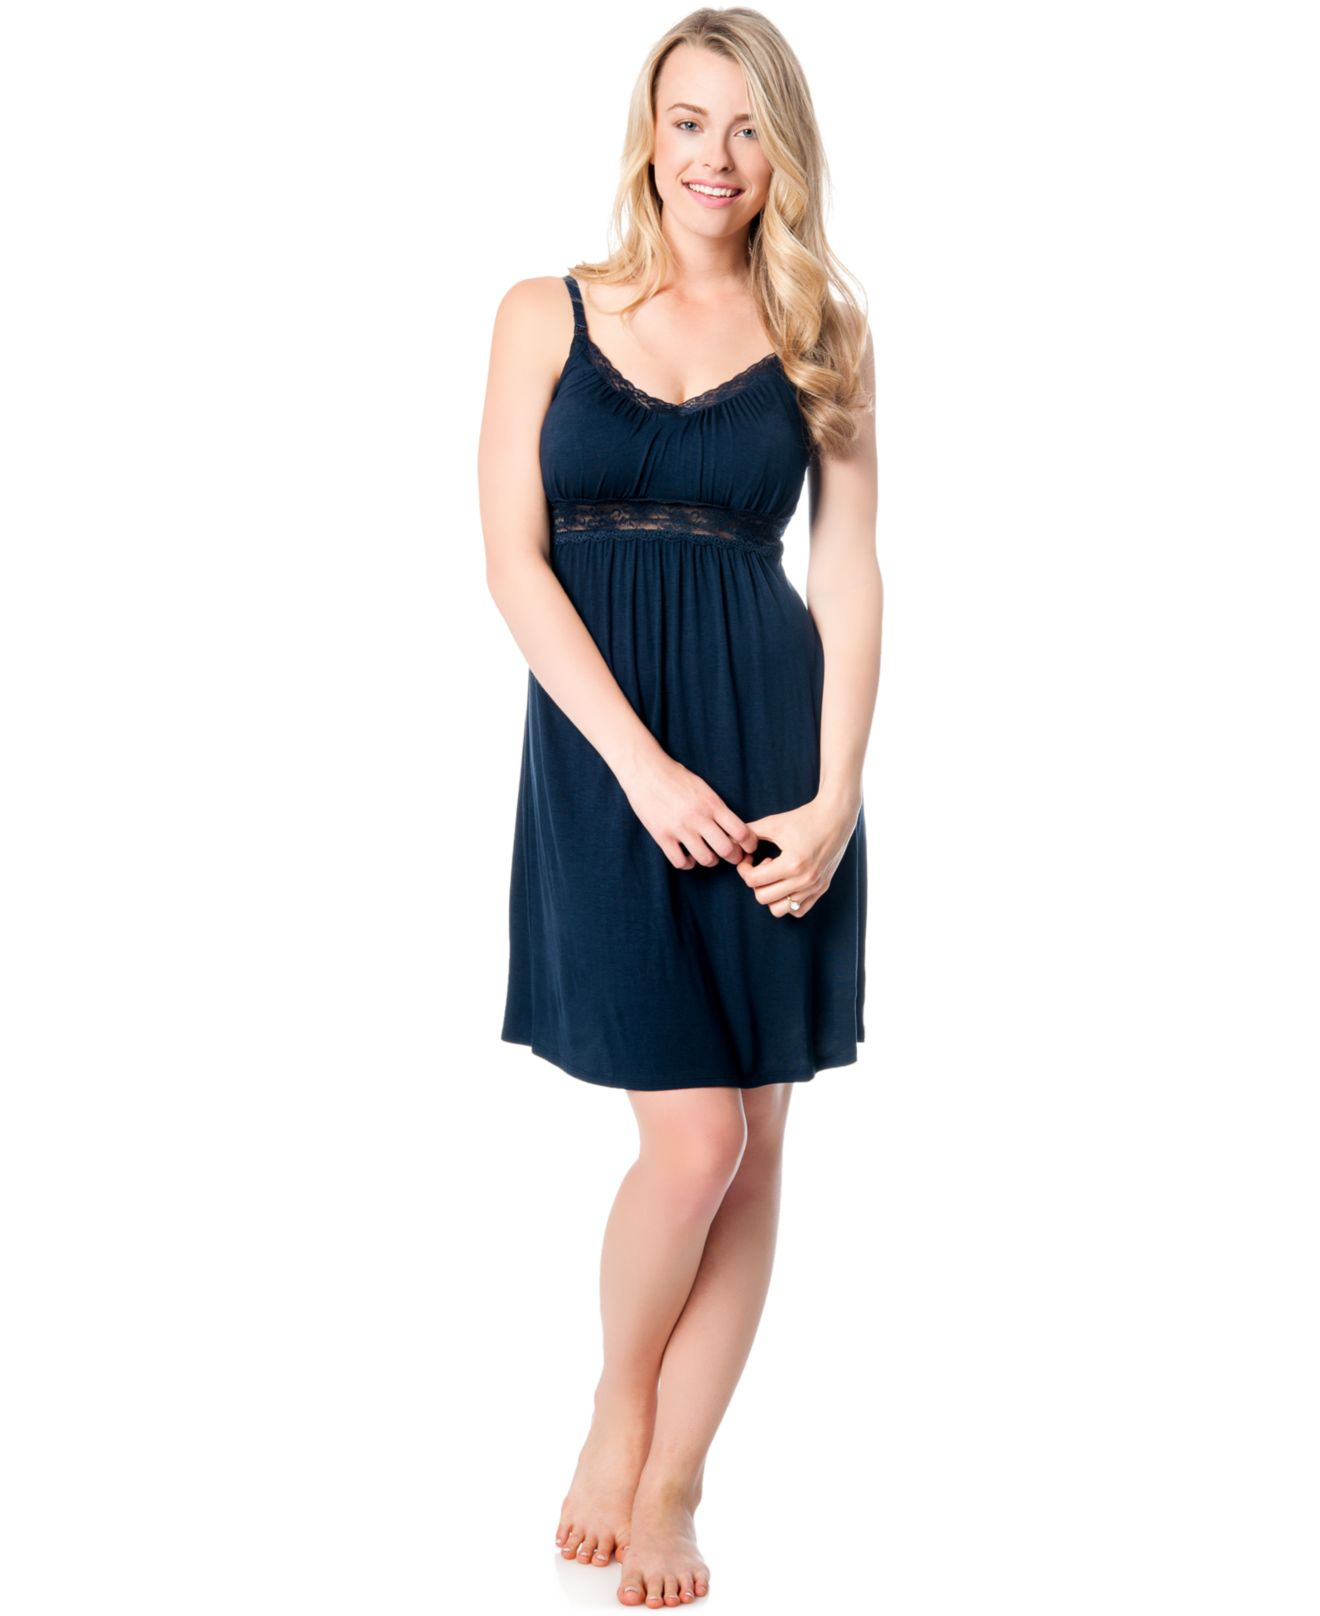 bc1e75c895615 Jessica Simpson Maternity Lace-trim Nursing Nightgown in Blue - Lyst